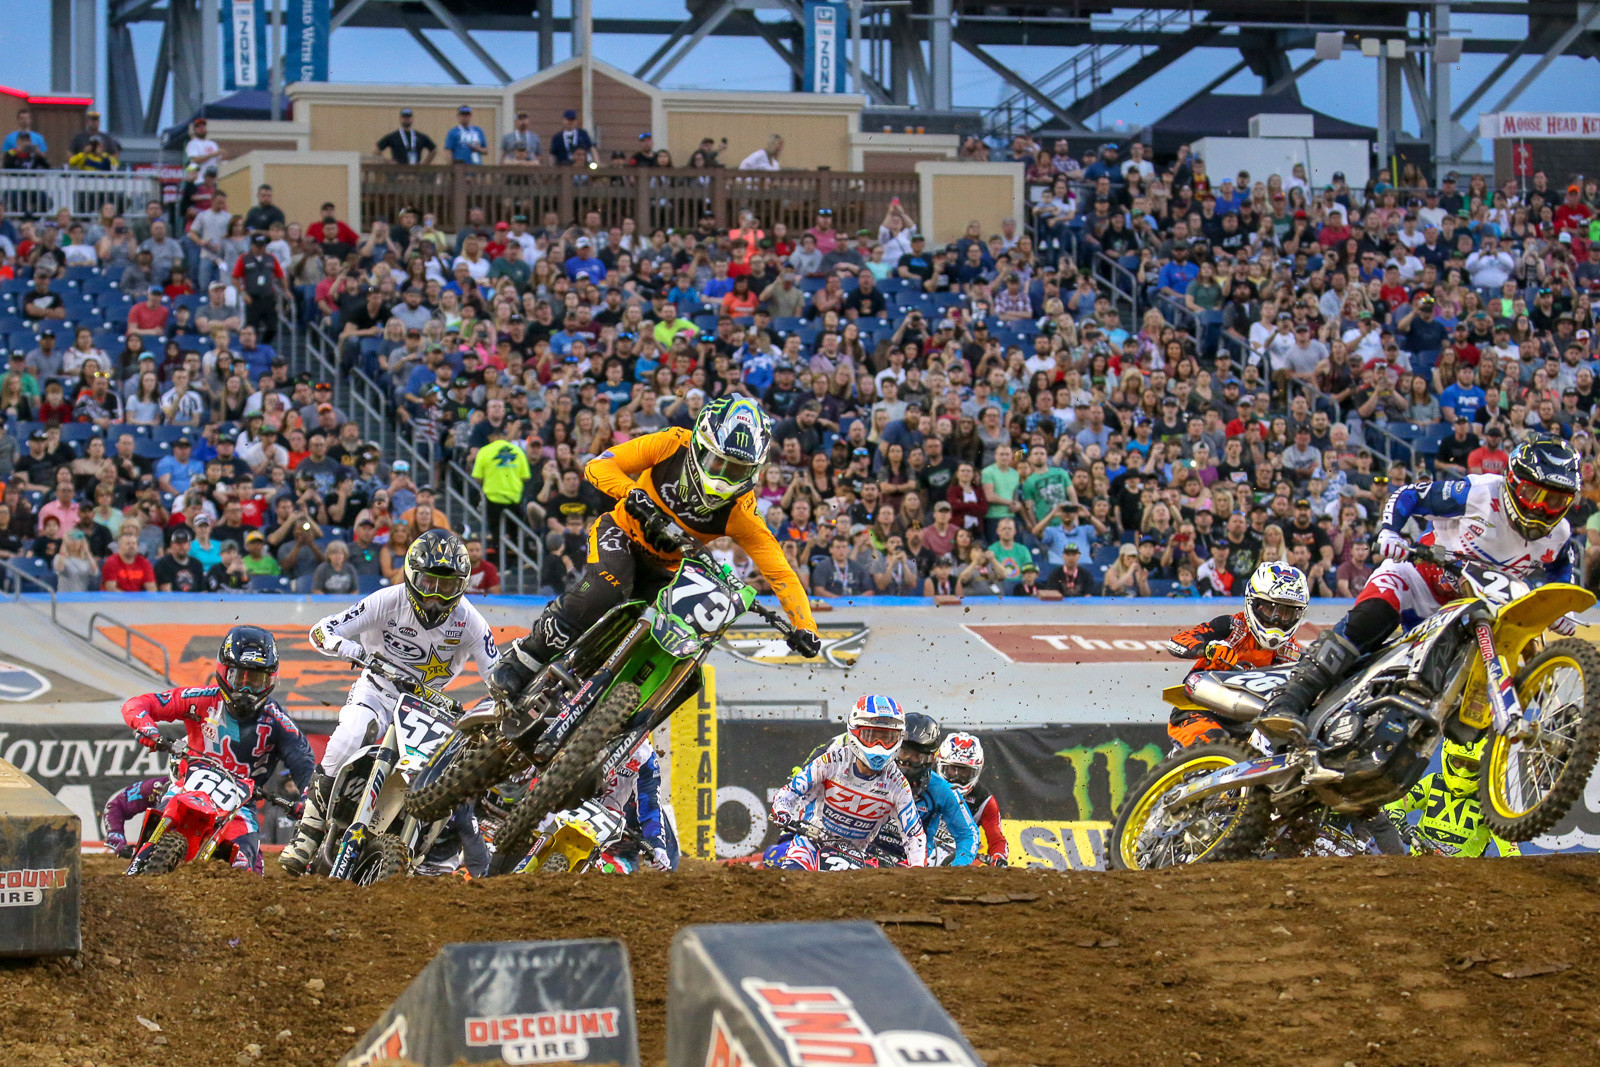 Heat winners? Martin Davalos grabbed the first 250 heat.